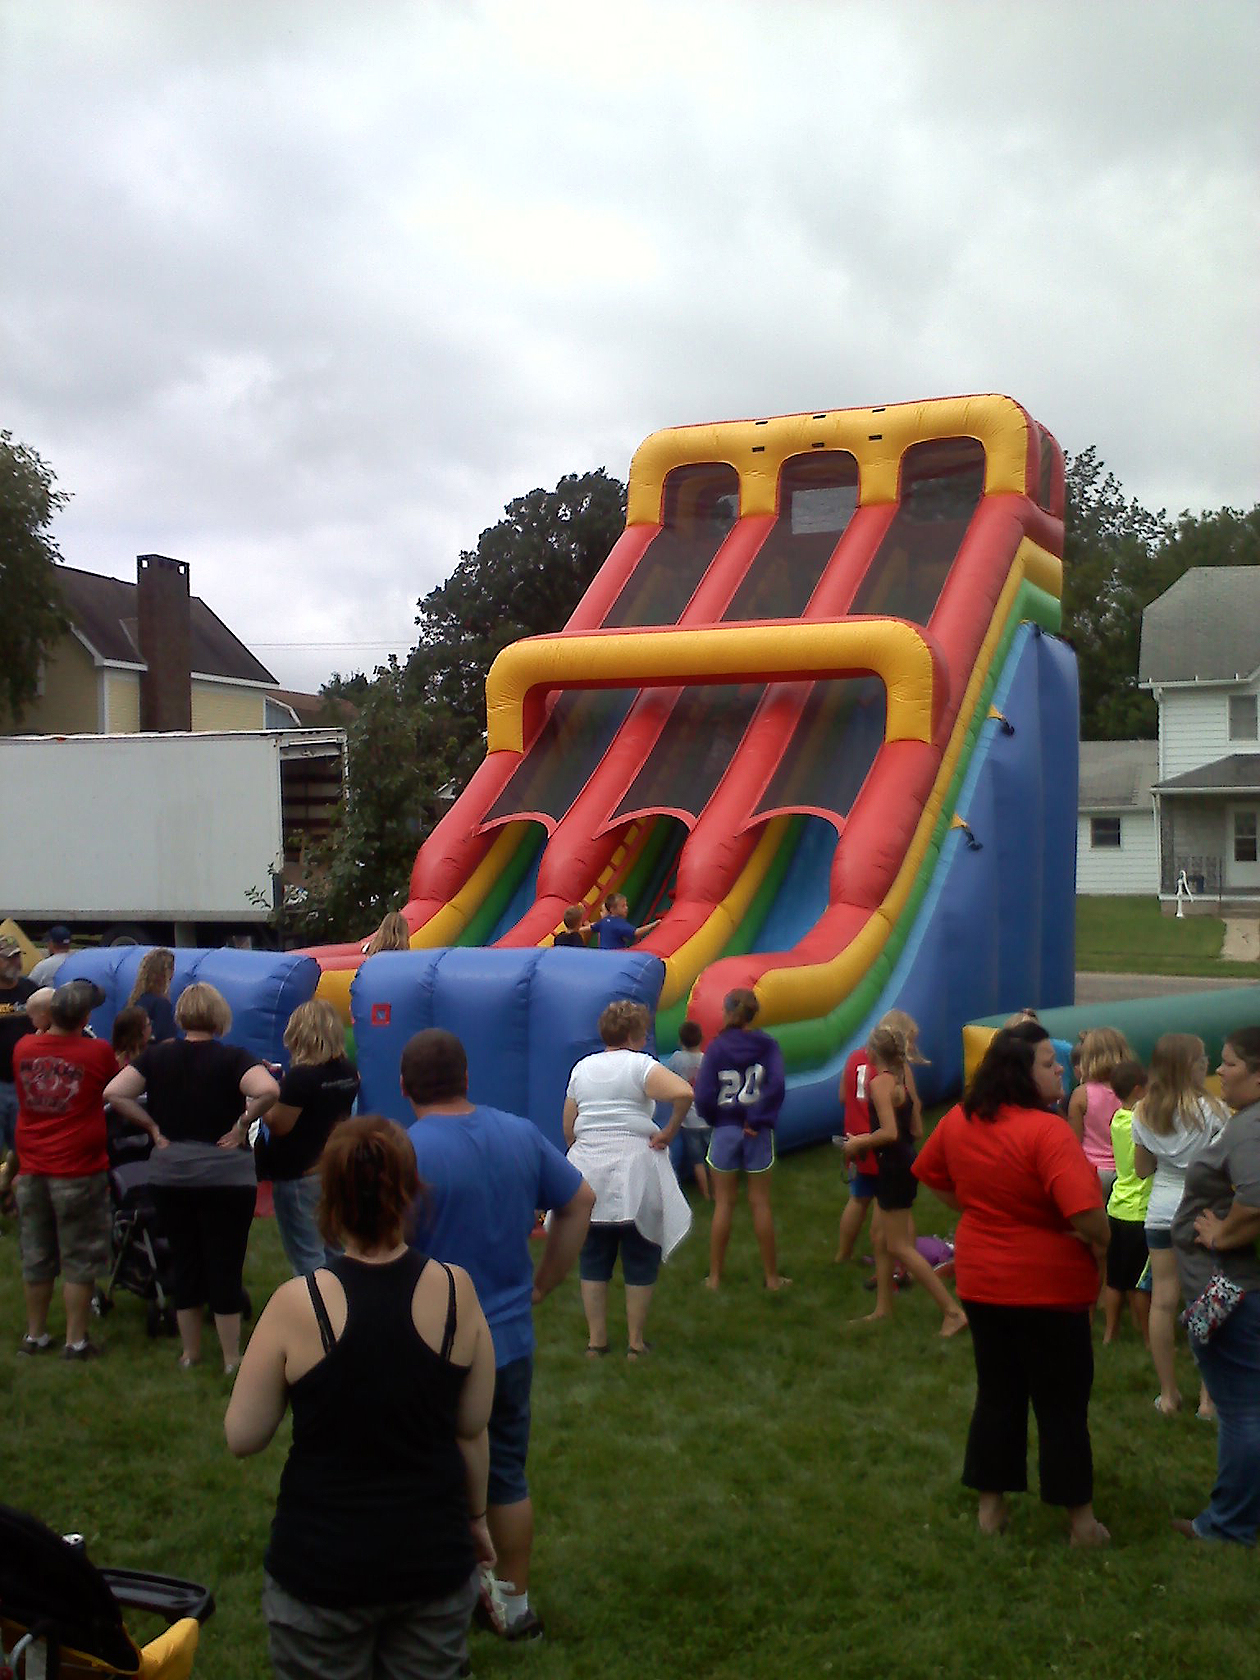 Crowd watching kids play on inflatable slide